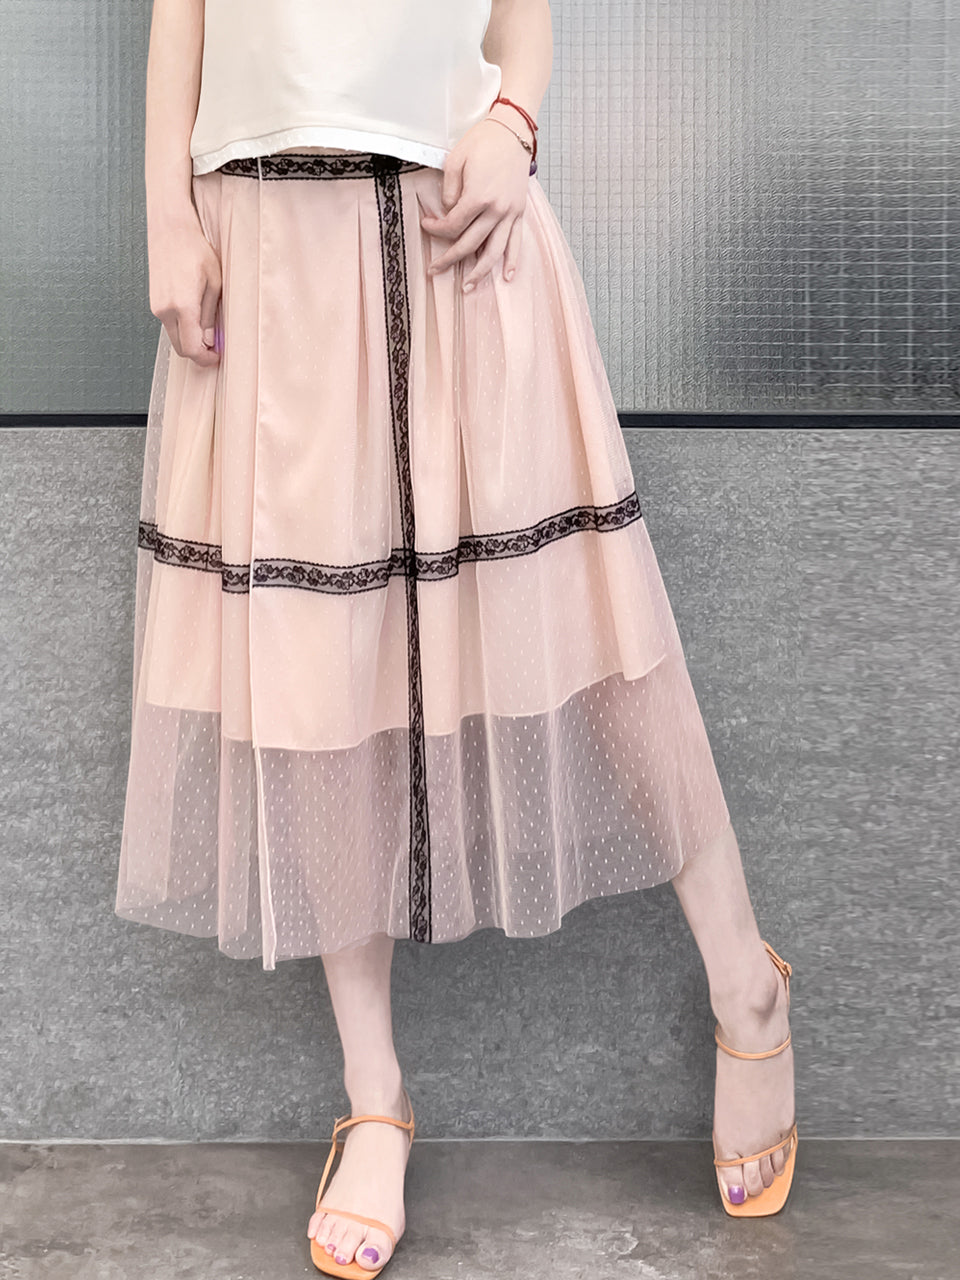 Restock! Blush Pink Lace Trim Tulle Layer Pleated Wrap Skirt